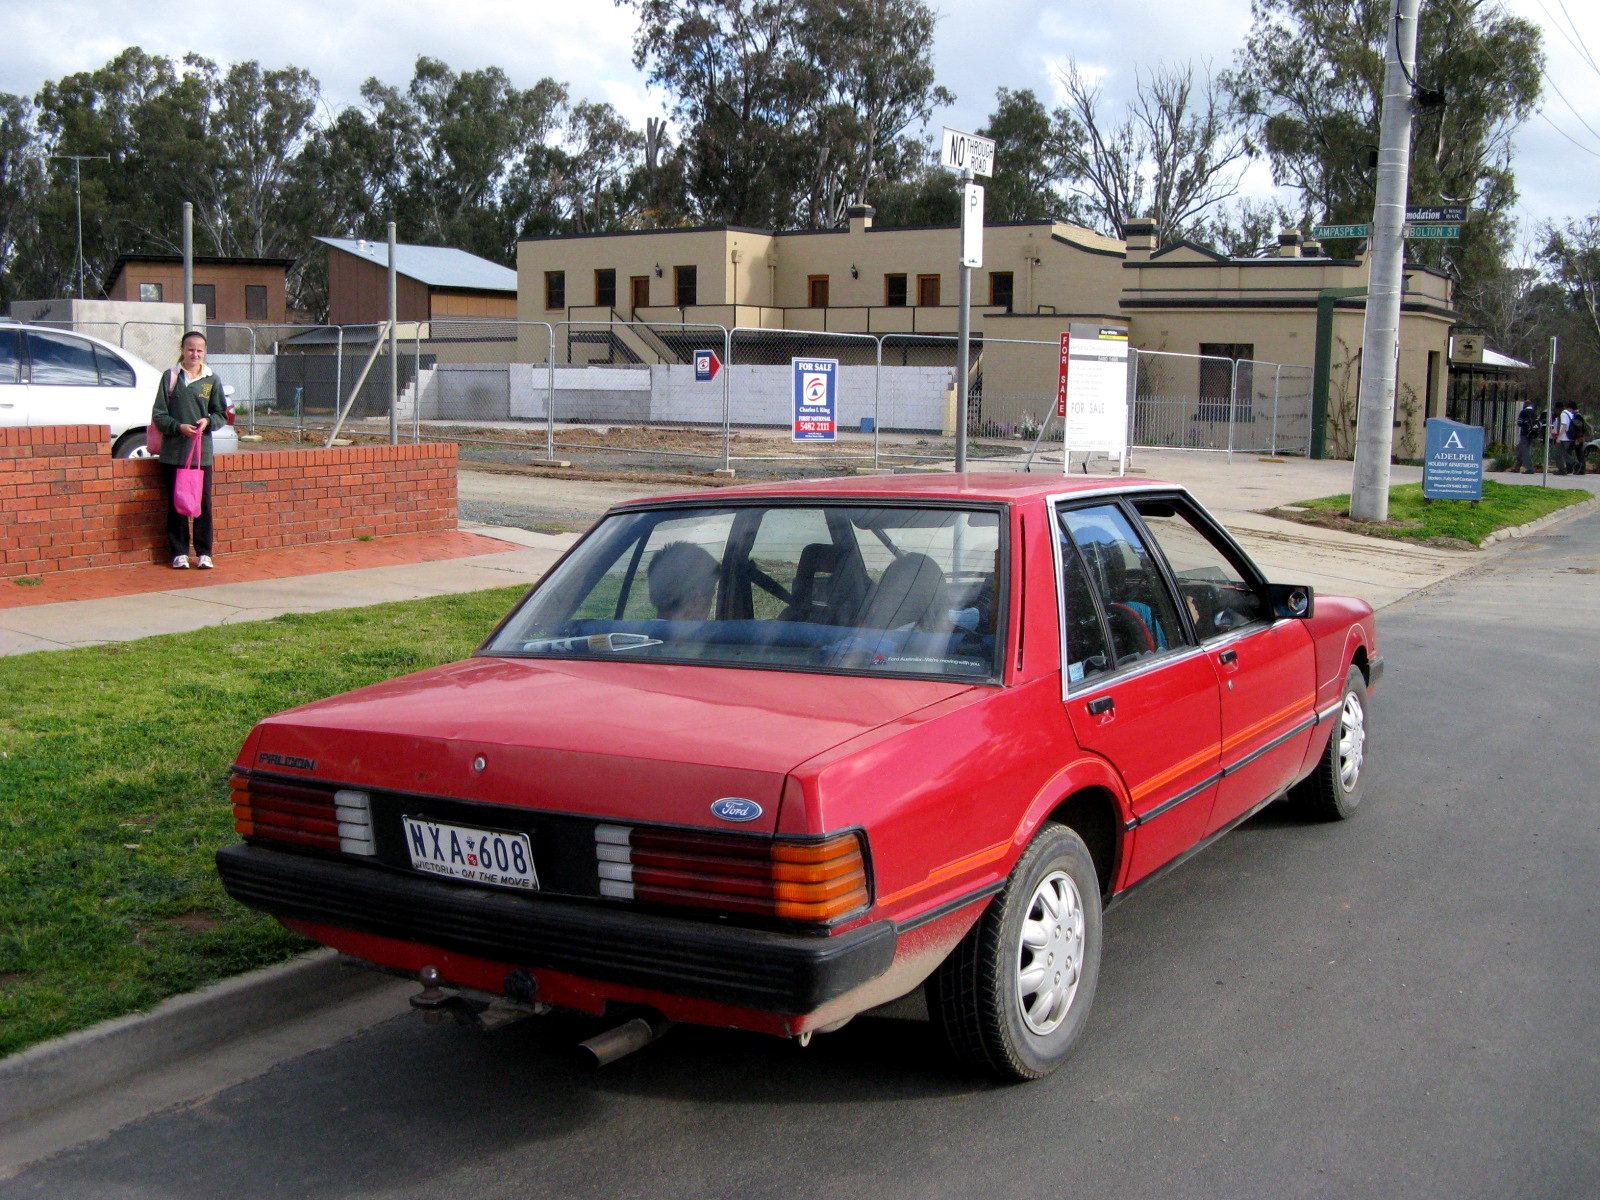 YZ5C728UCF0XF5DV moreover Xy Ford Falcon Gtho Phase 3 Fails To Reach Half Million Mark At Auction 41234 additionally 200890 Ford Falcon With A Coyote V8 together with 19870 Xg Xe Ute additionally Showthread. on ford xf falcon